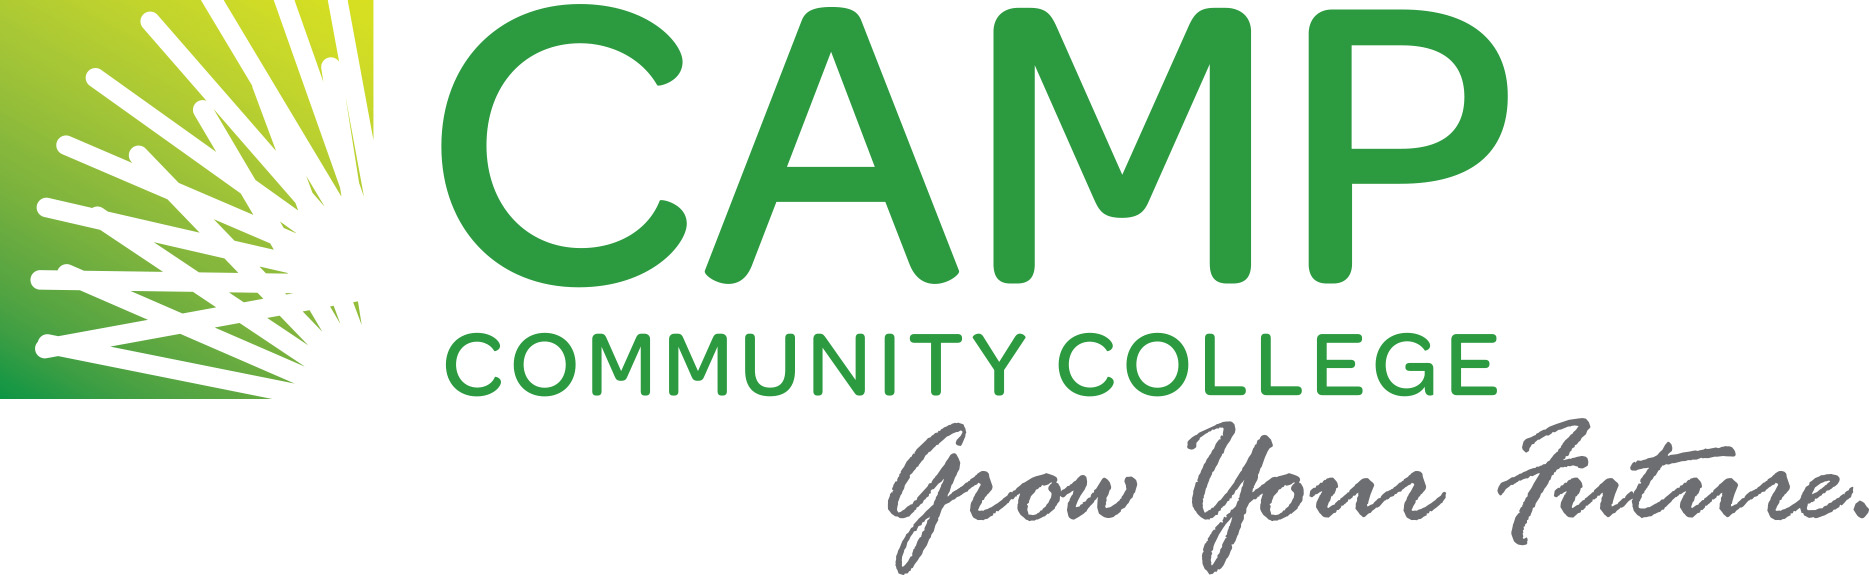 Paul D. Camp Community College gets a fresh new look